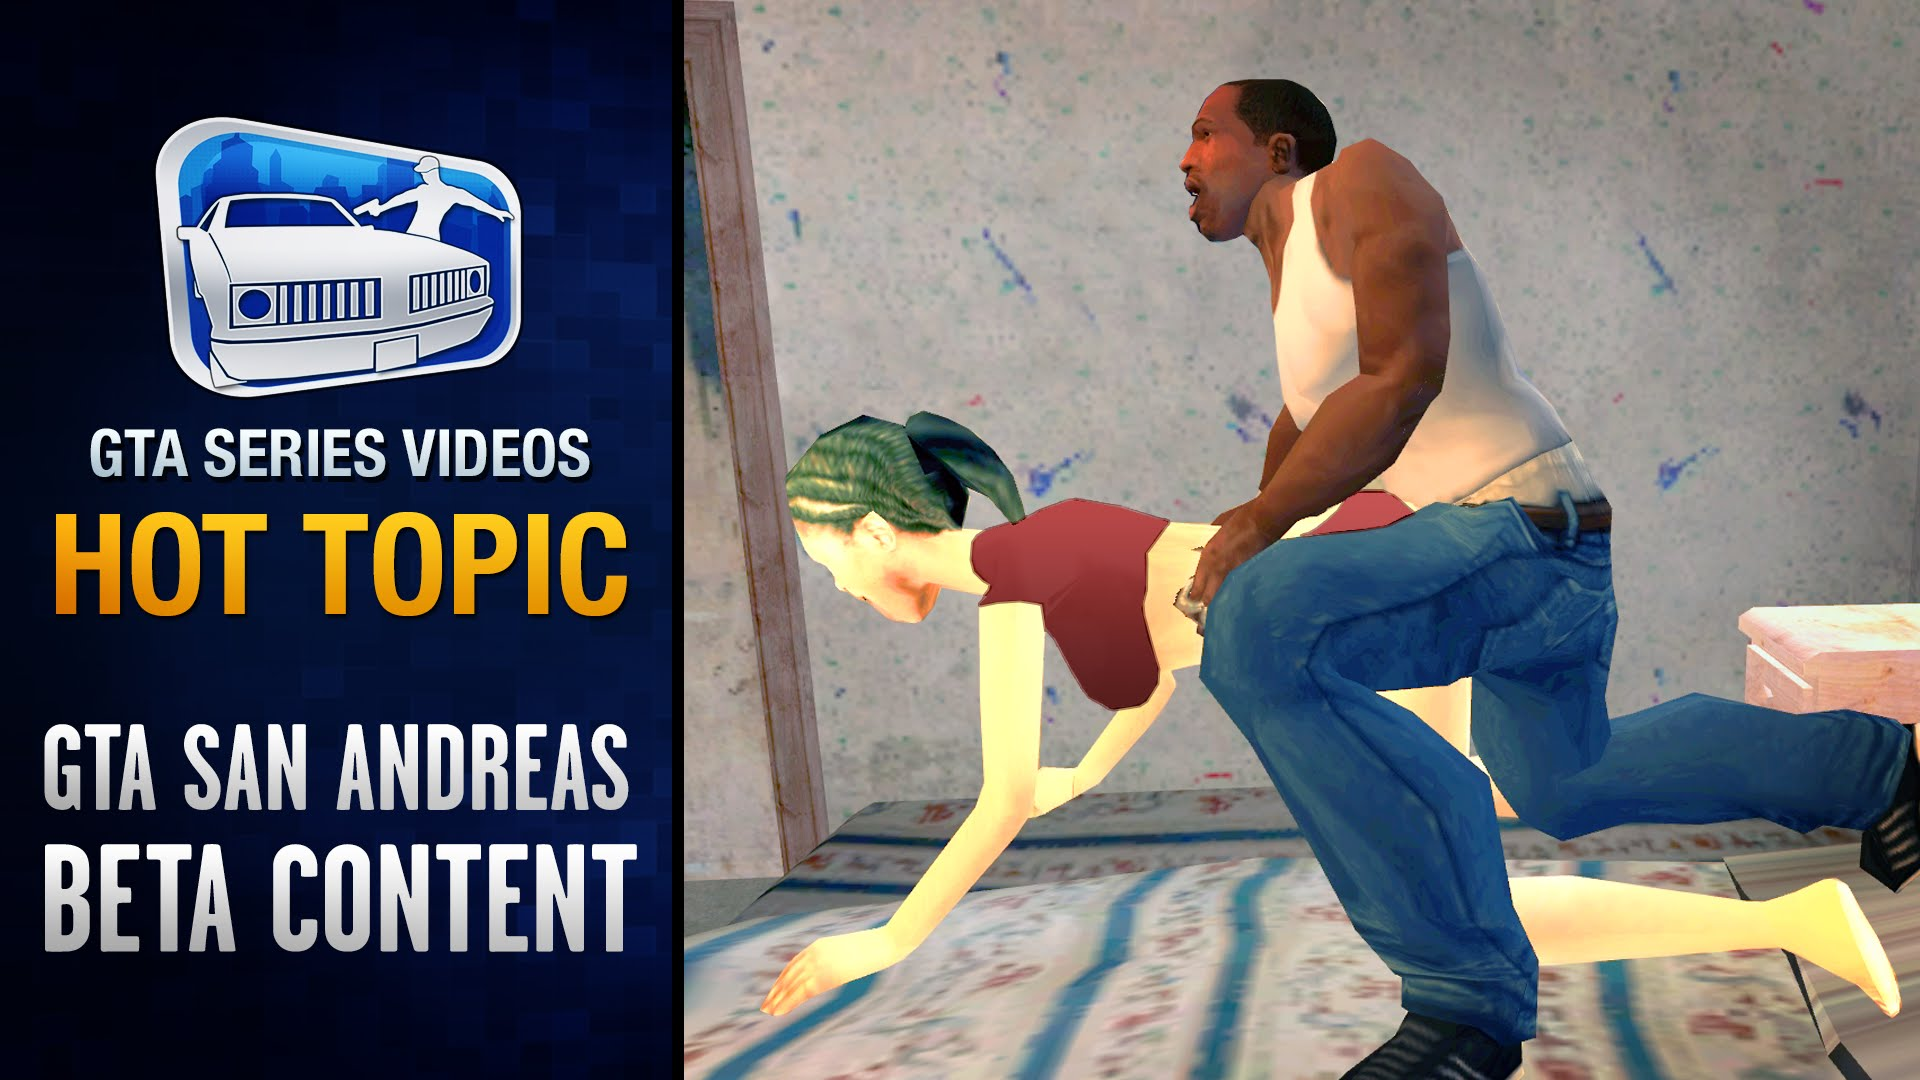 GTA San Andreas Beta Version and Removed Content - Hot Topic #11 - YouTube